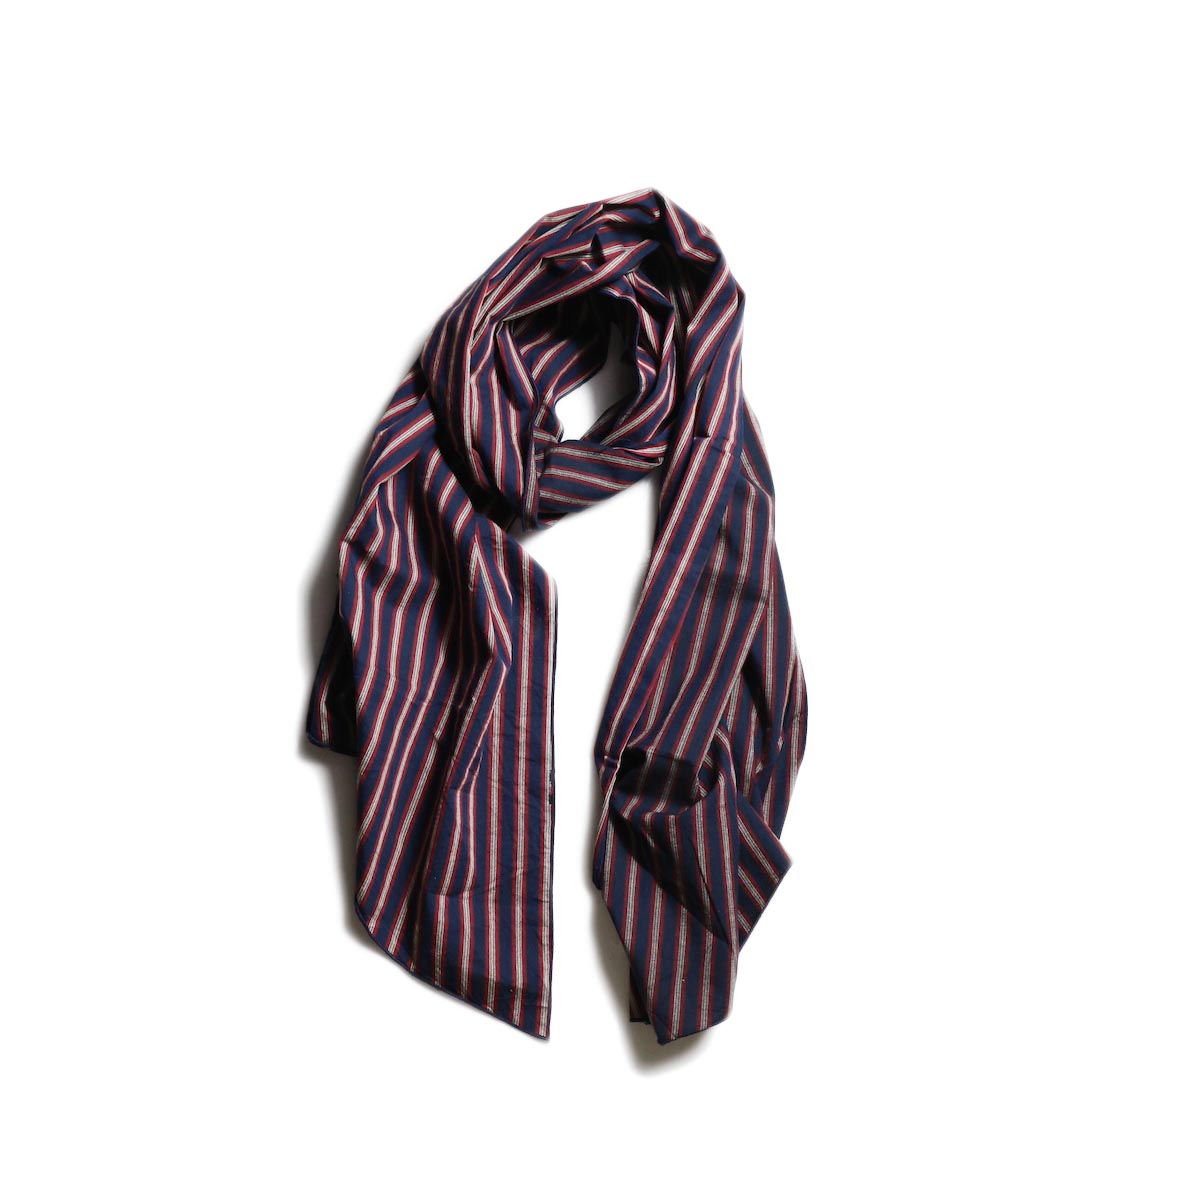 Engineered Garments / Long Scarf -Regimental St. (Navy/Red/White)